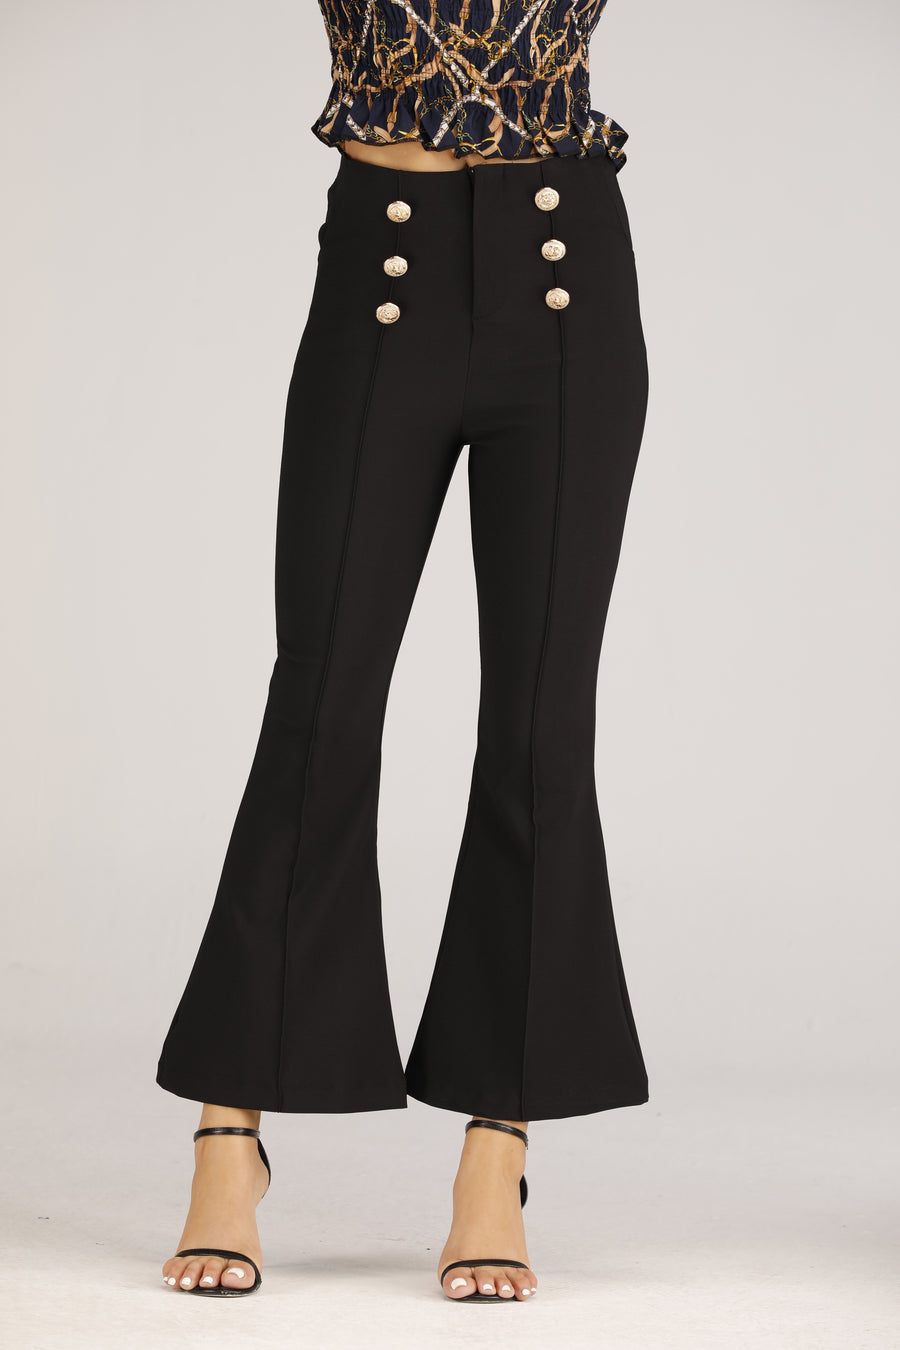 Mantra Pakistan Black Flare Jeans with Gold Button | BOTTOMS